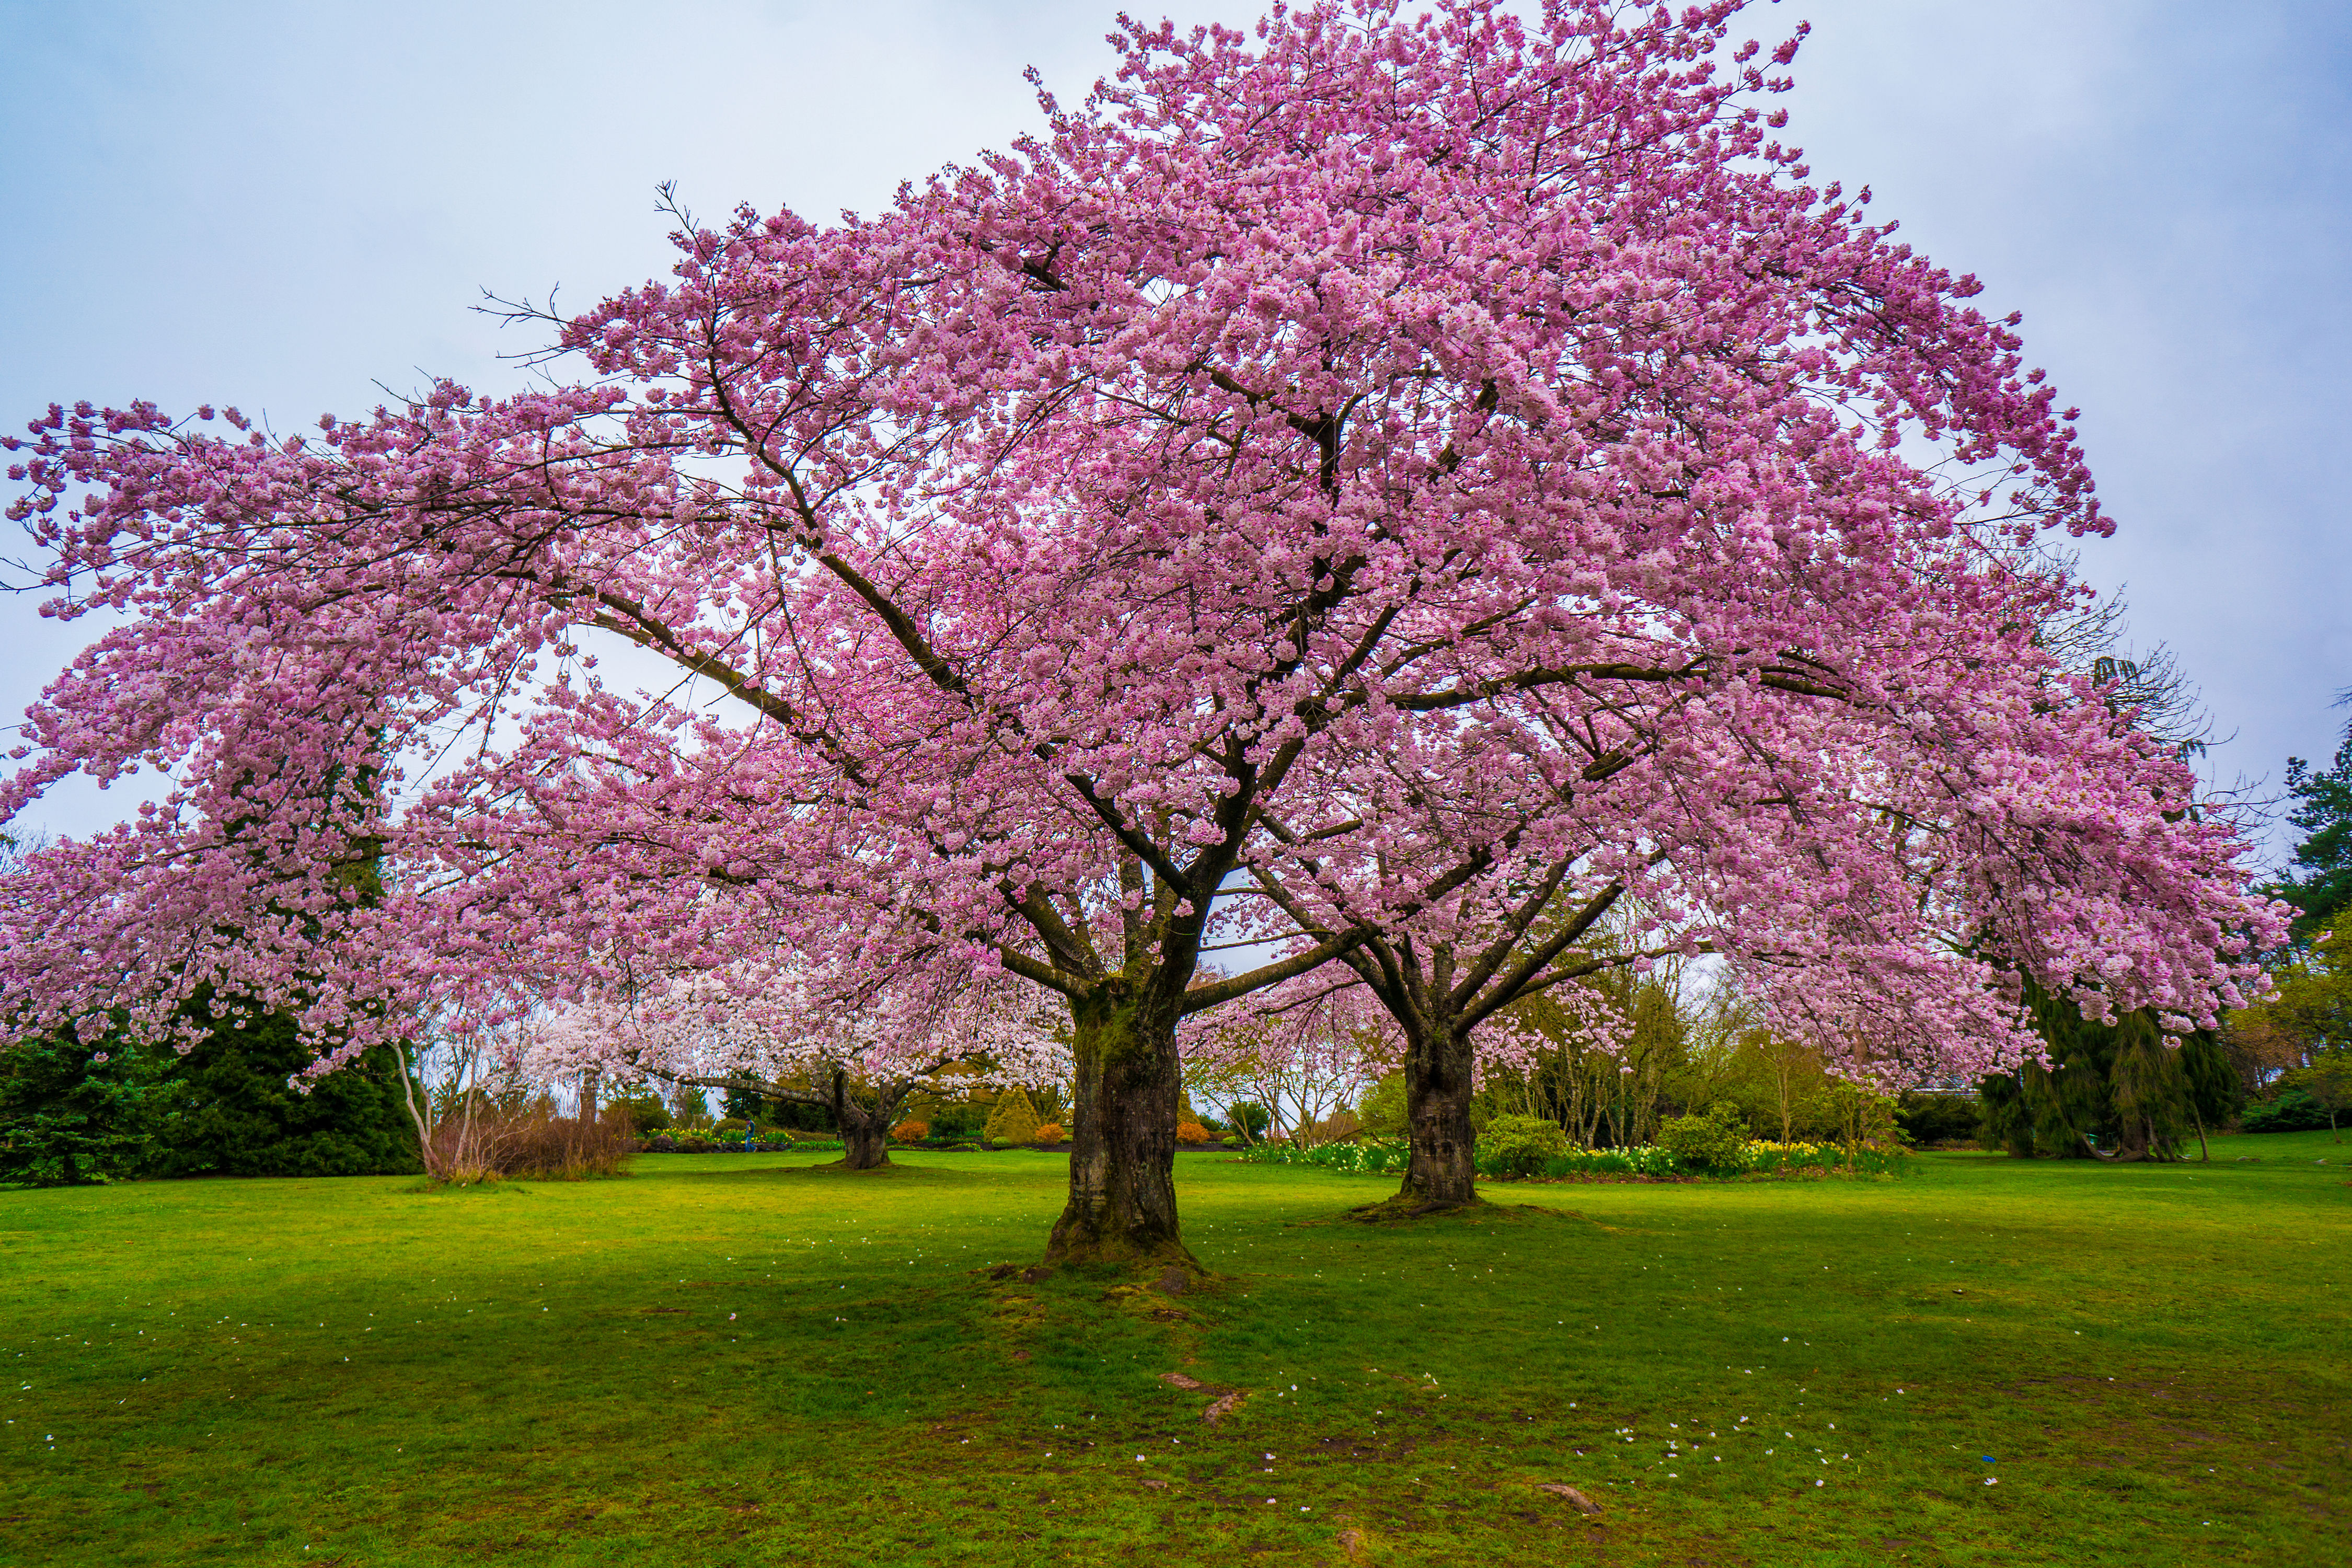 You Can Buy a Cherry Blossom Tree for Just $39 at Home Depot